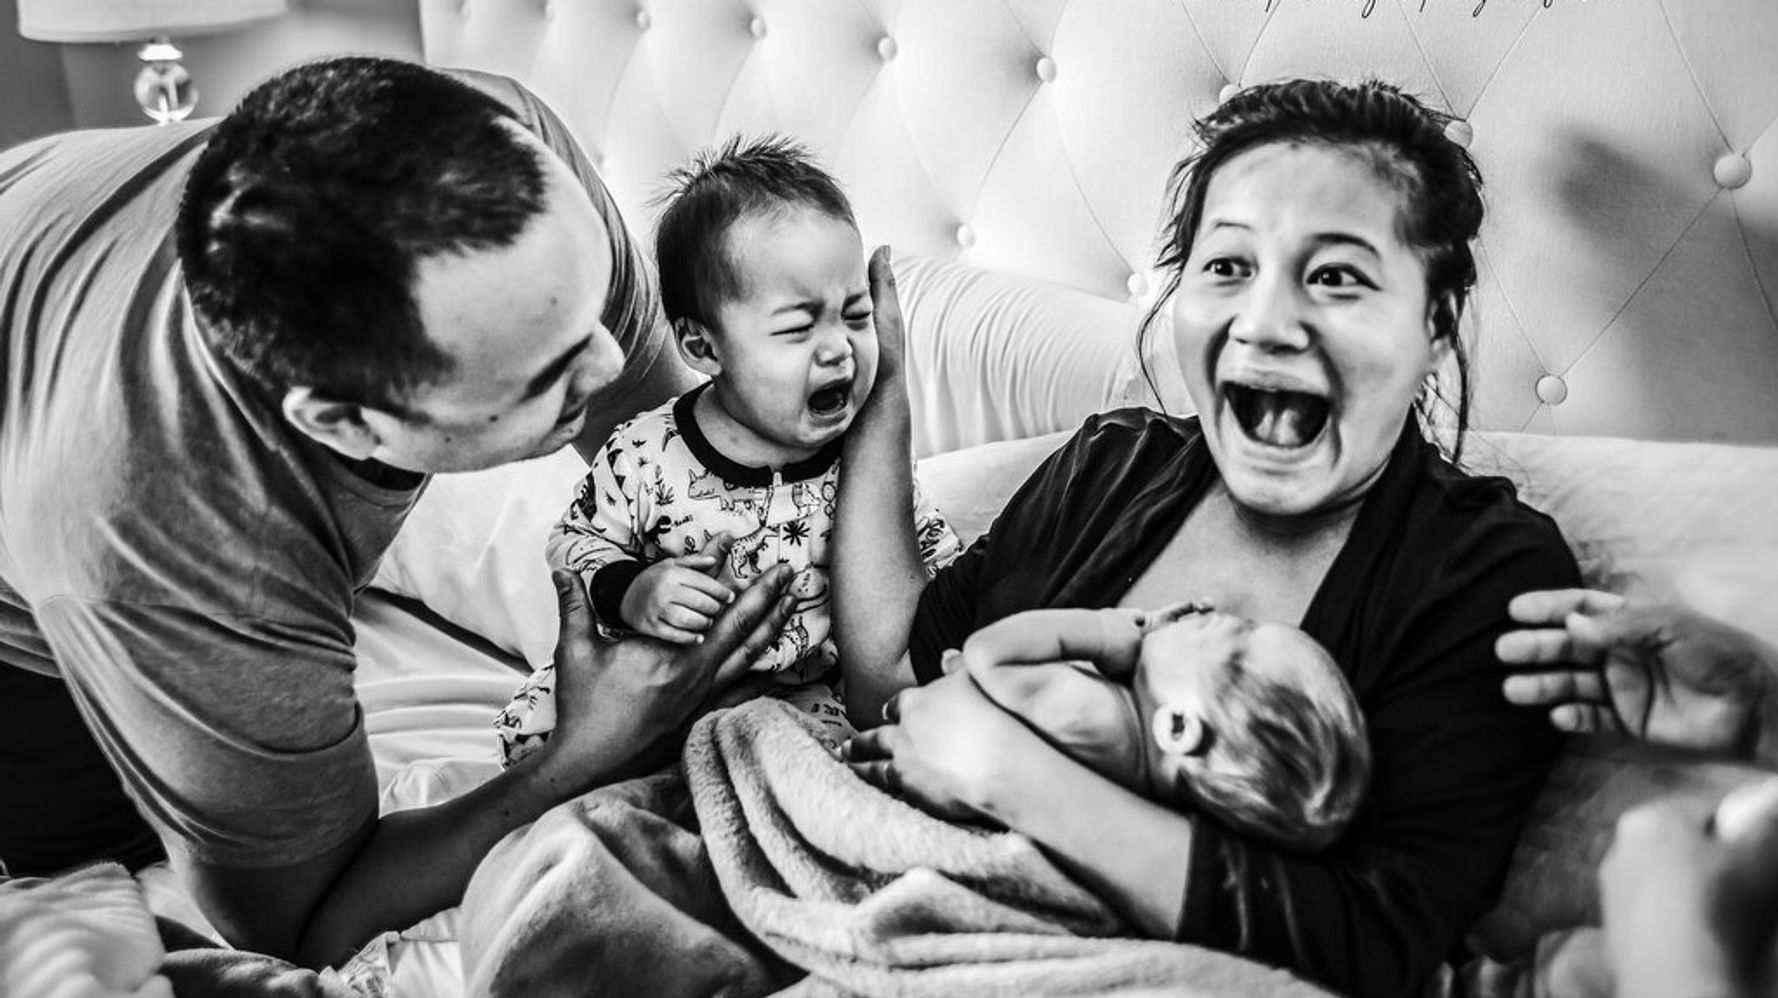 21 Striking Birth Photos That Capture The Strength Of Mothers